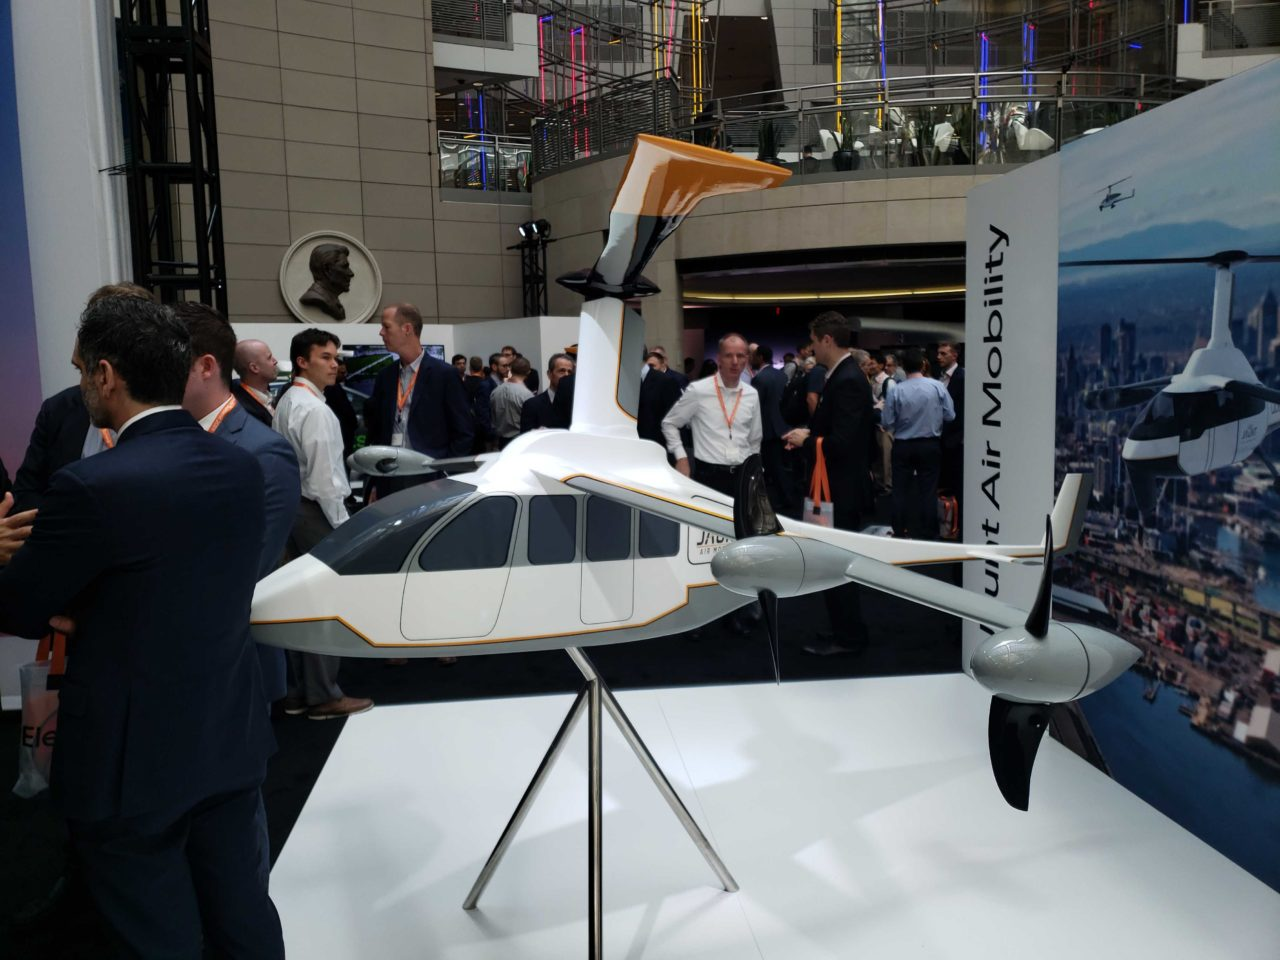 Jaunt Air Mobility, recently announced as Uber's sixth partner, displays their aircraft model at Uber Elevate.